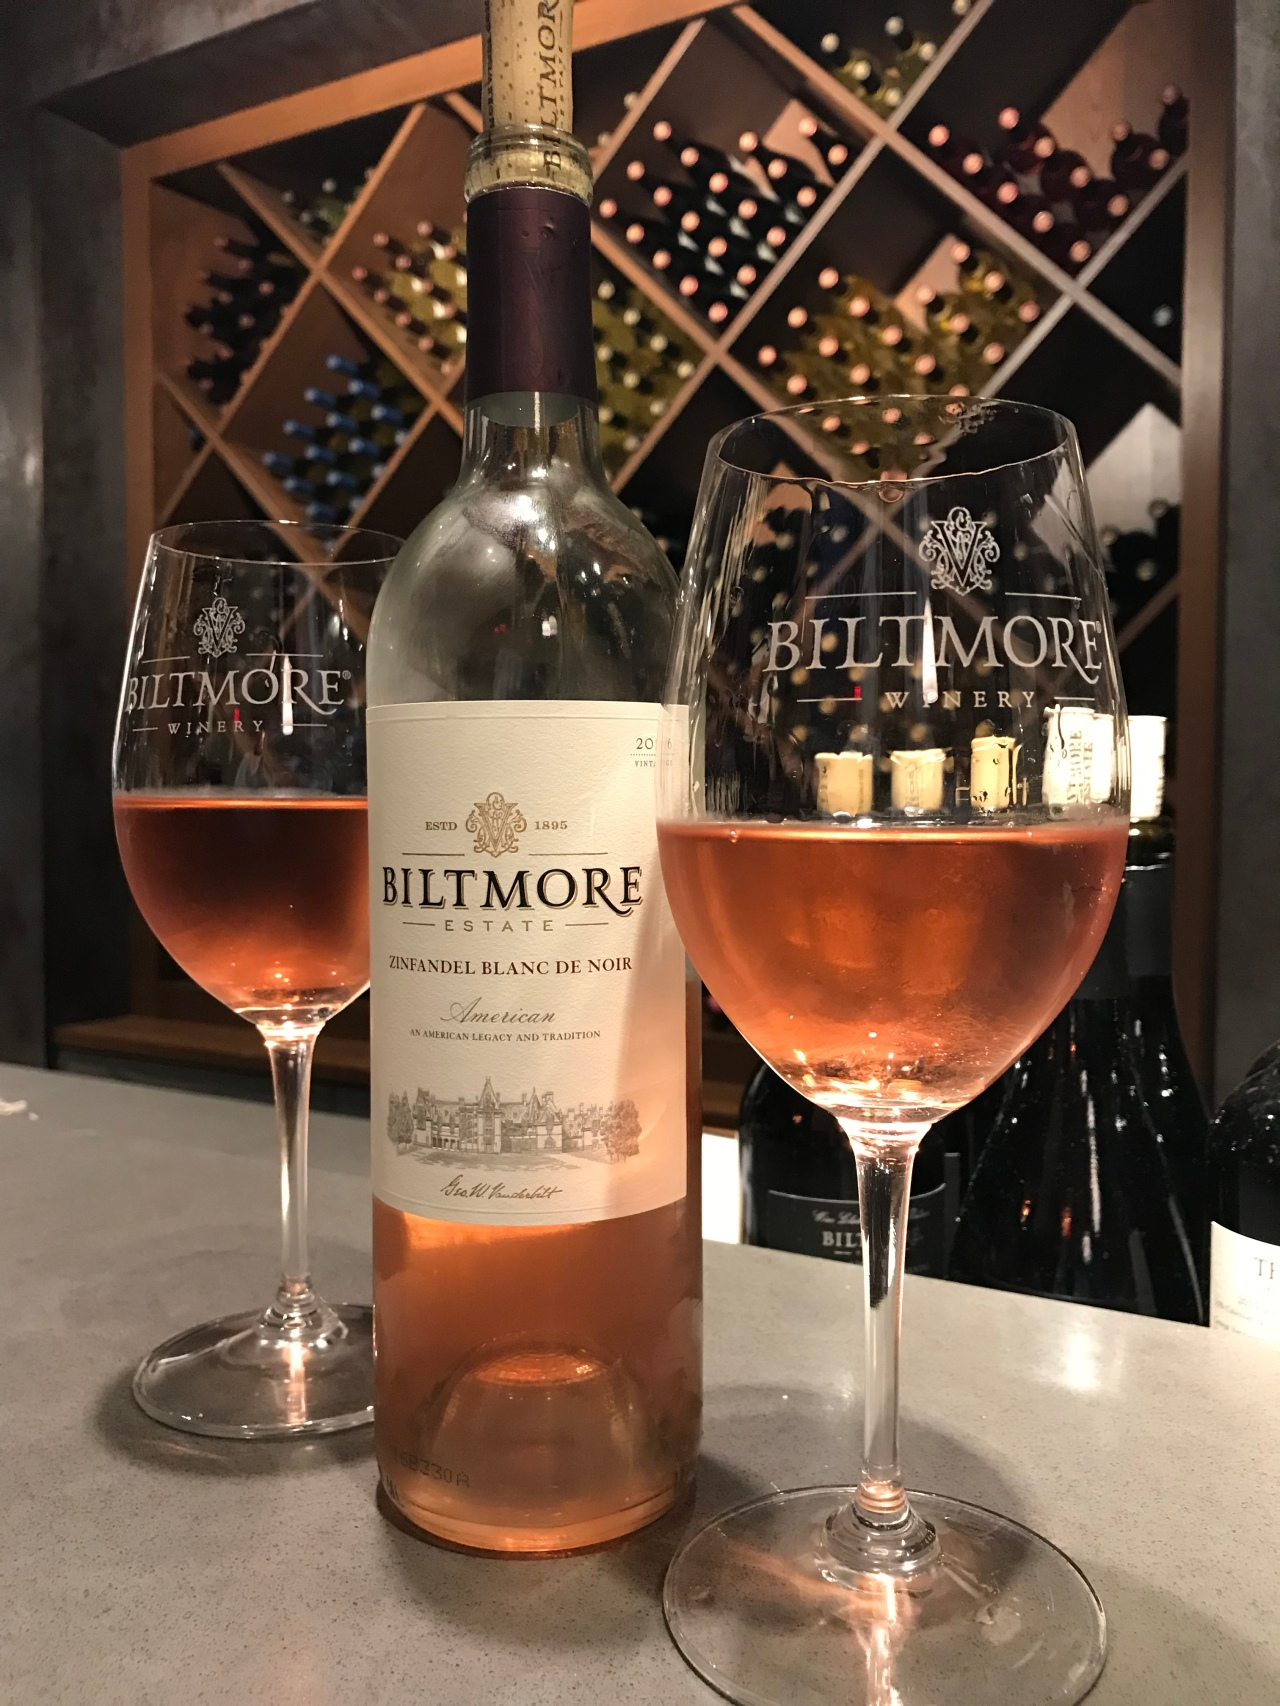 Winery in Pictures – Biltmore Estate Winery